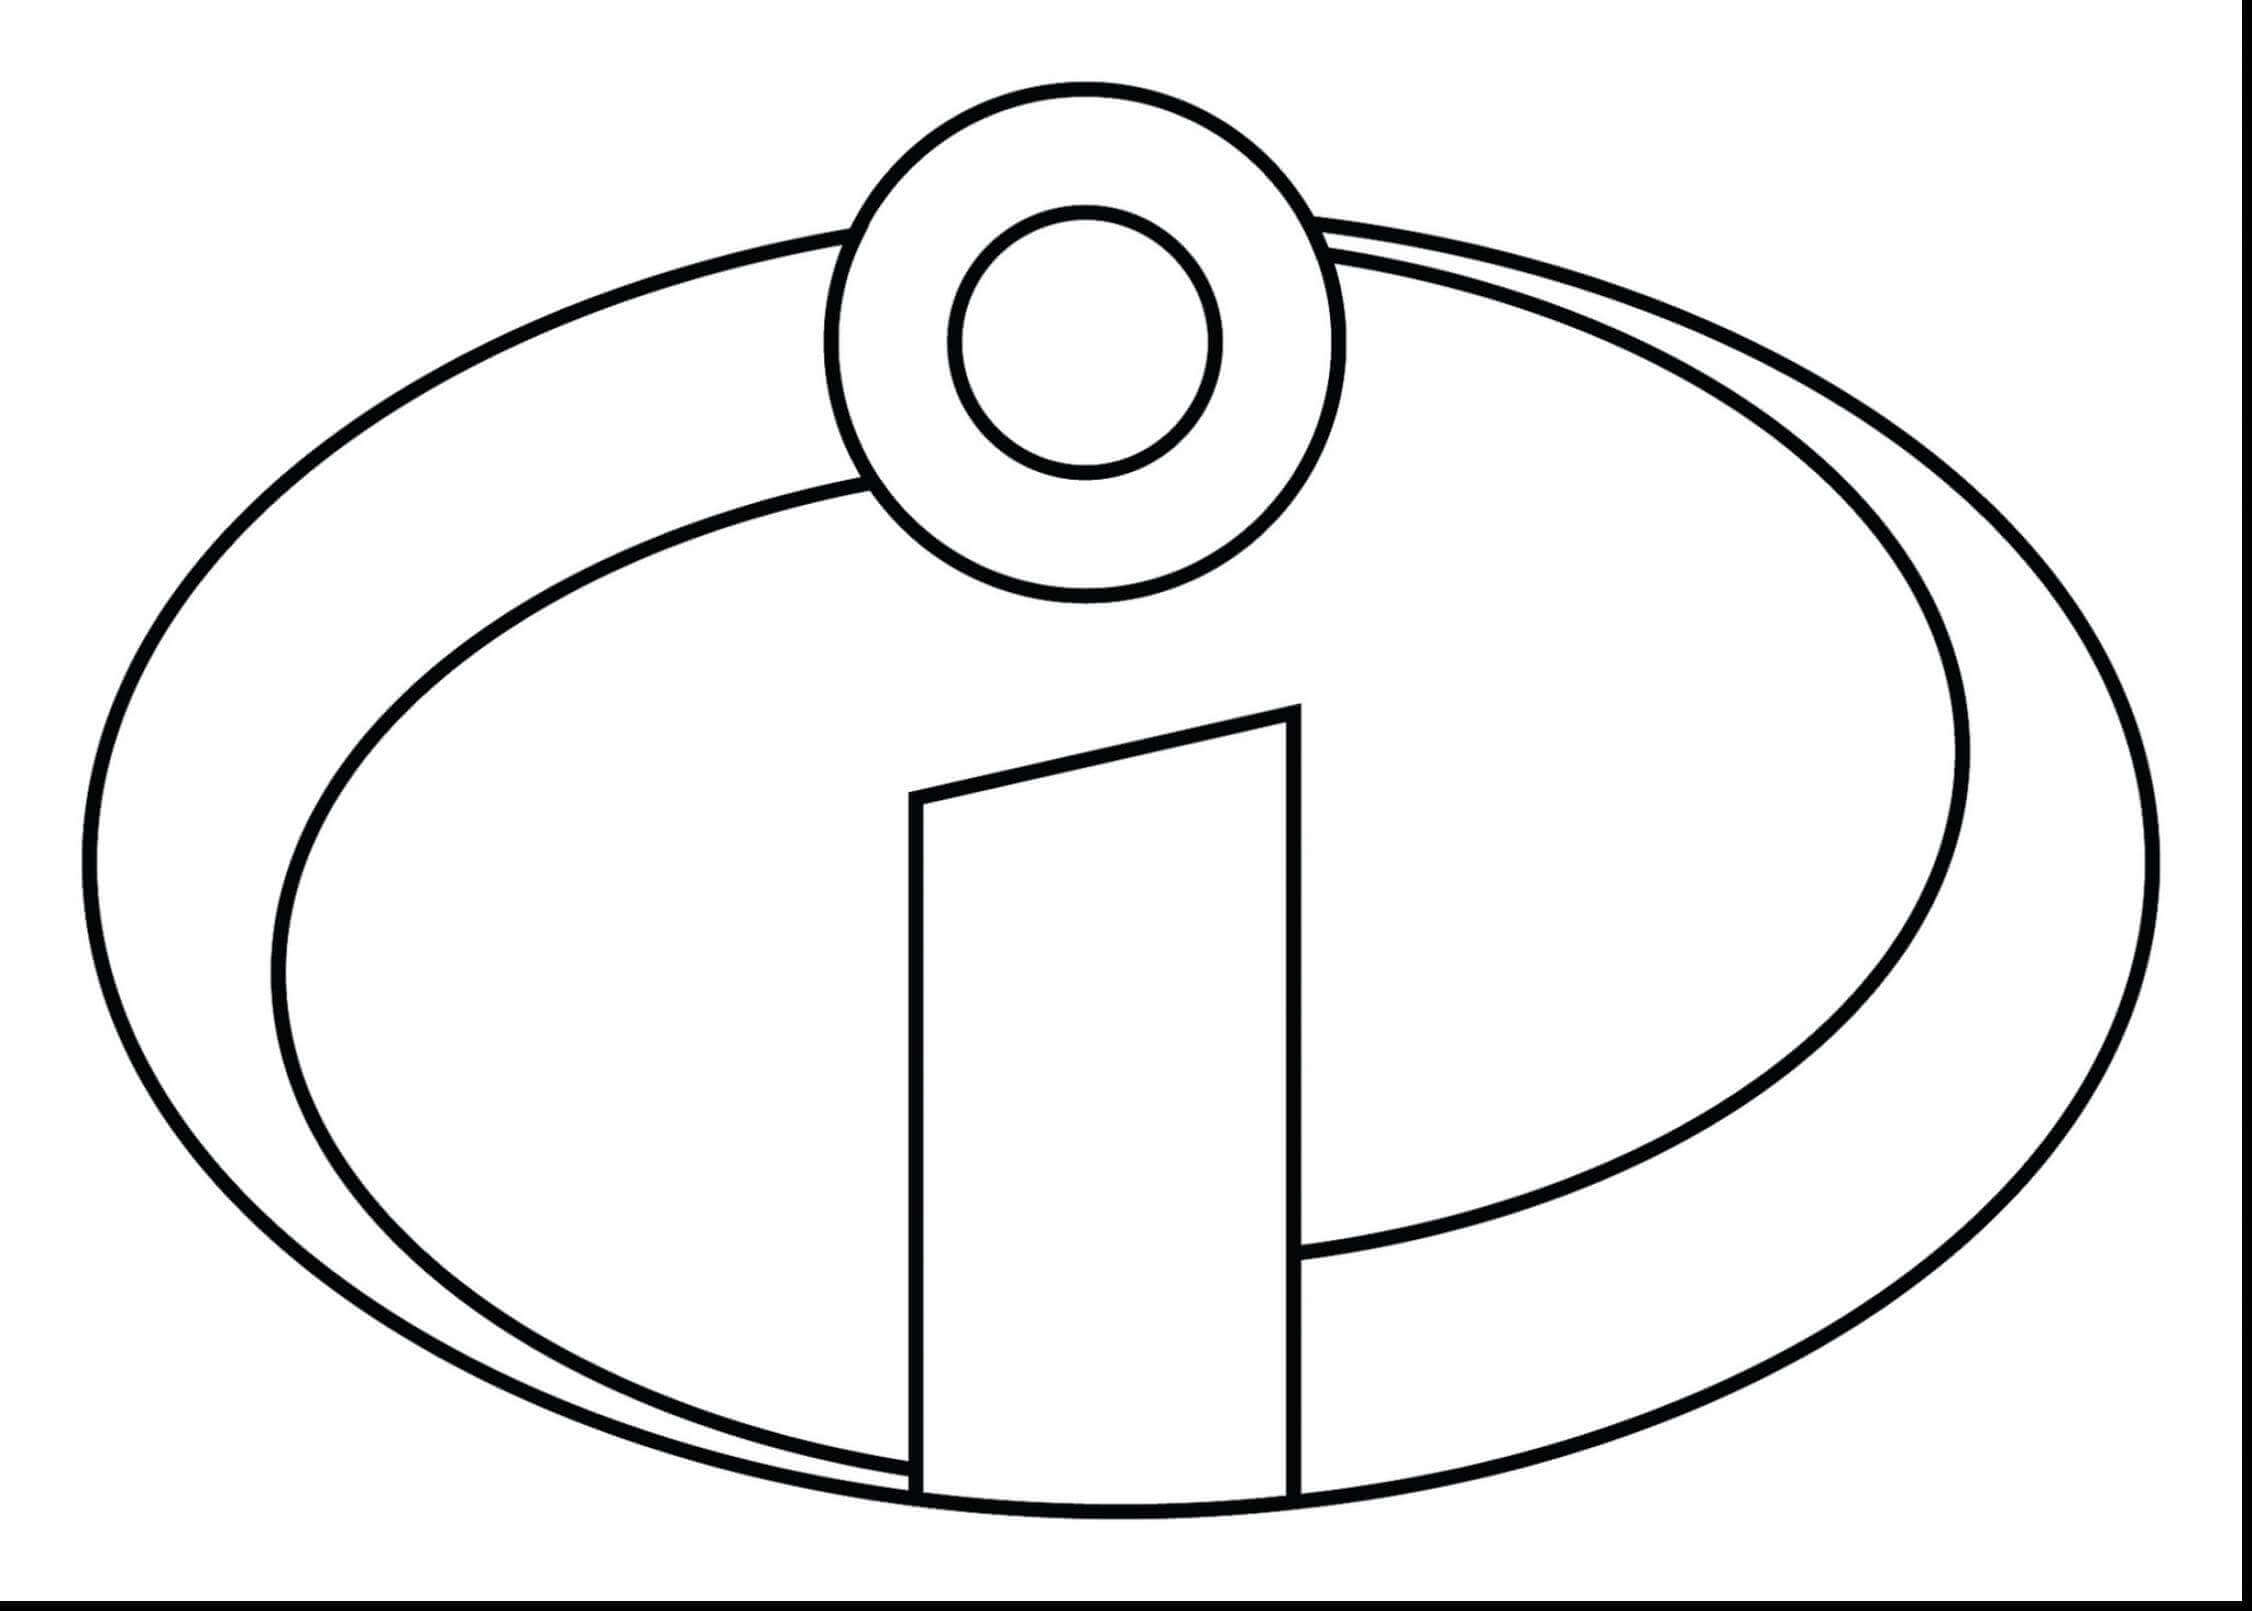 printable incredibles 2 coloring pages dash incredibles coloring page luxury the incredibles printable pages incredibles 2 coloring